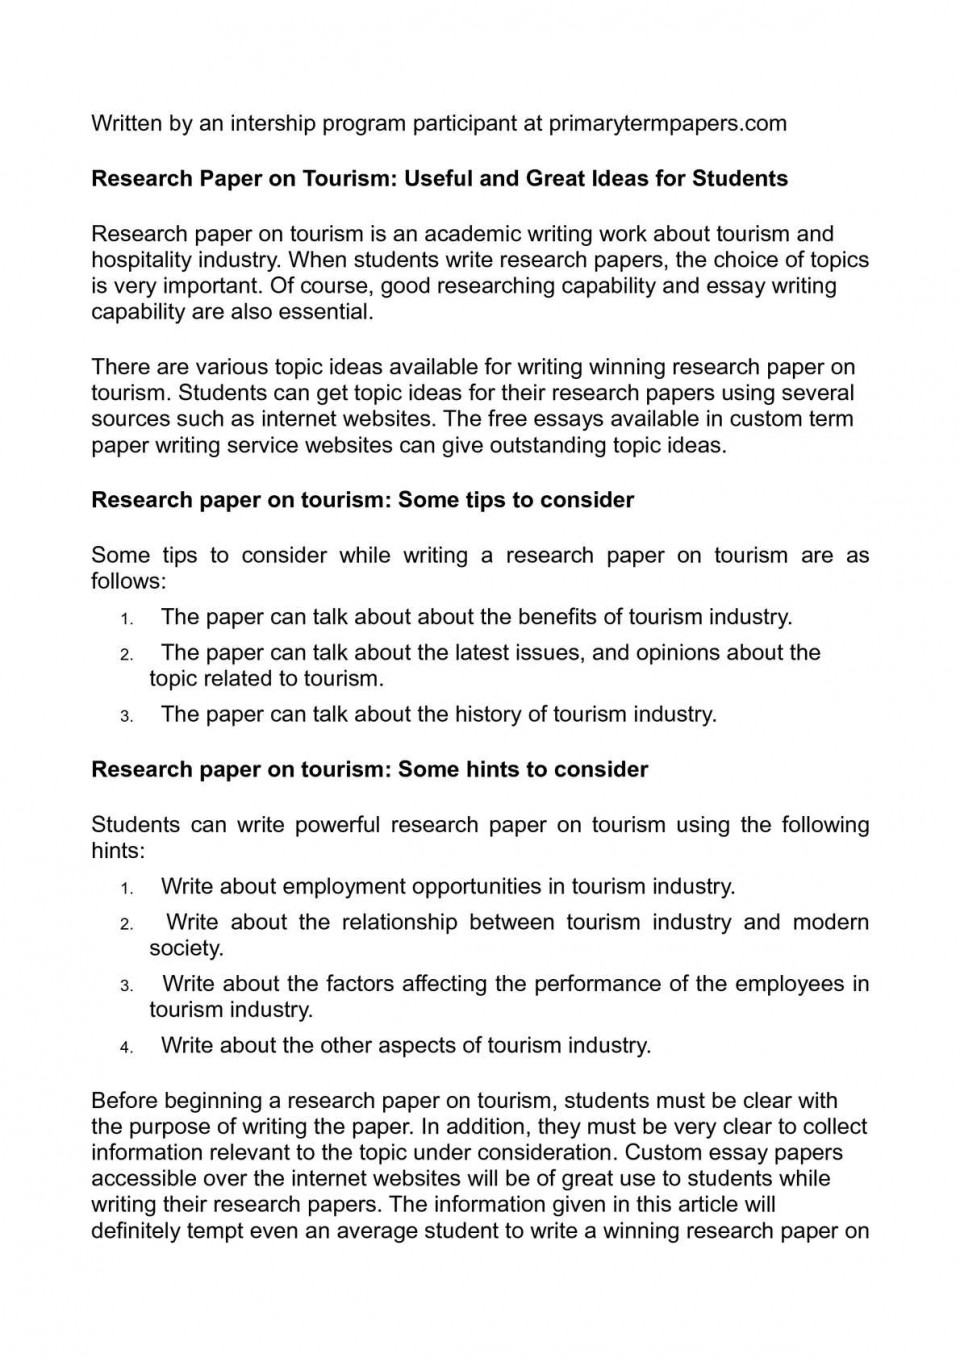 009 Research Paper Ideas For Fascinating Papers In Economics High School College 960